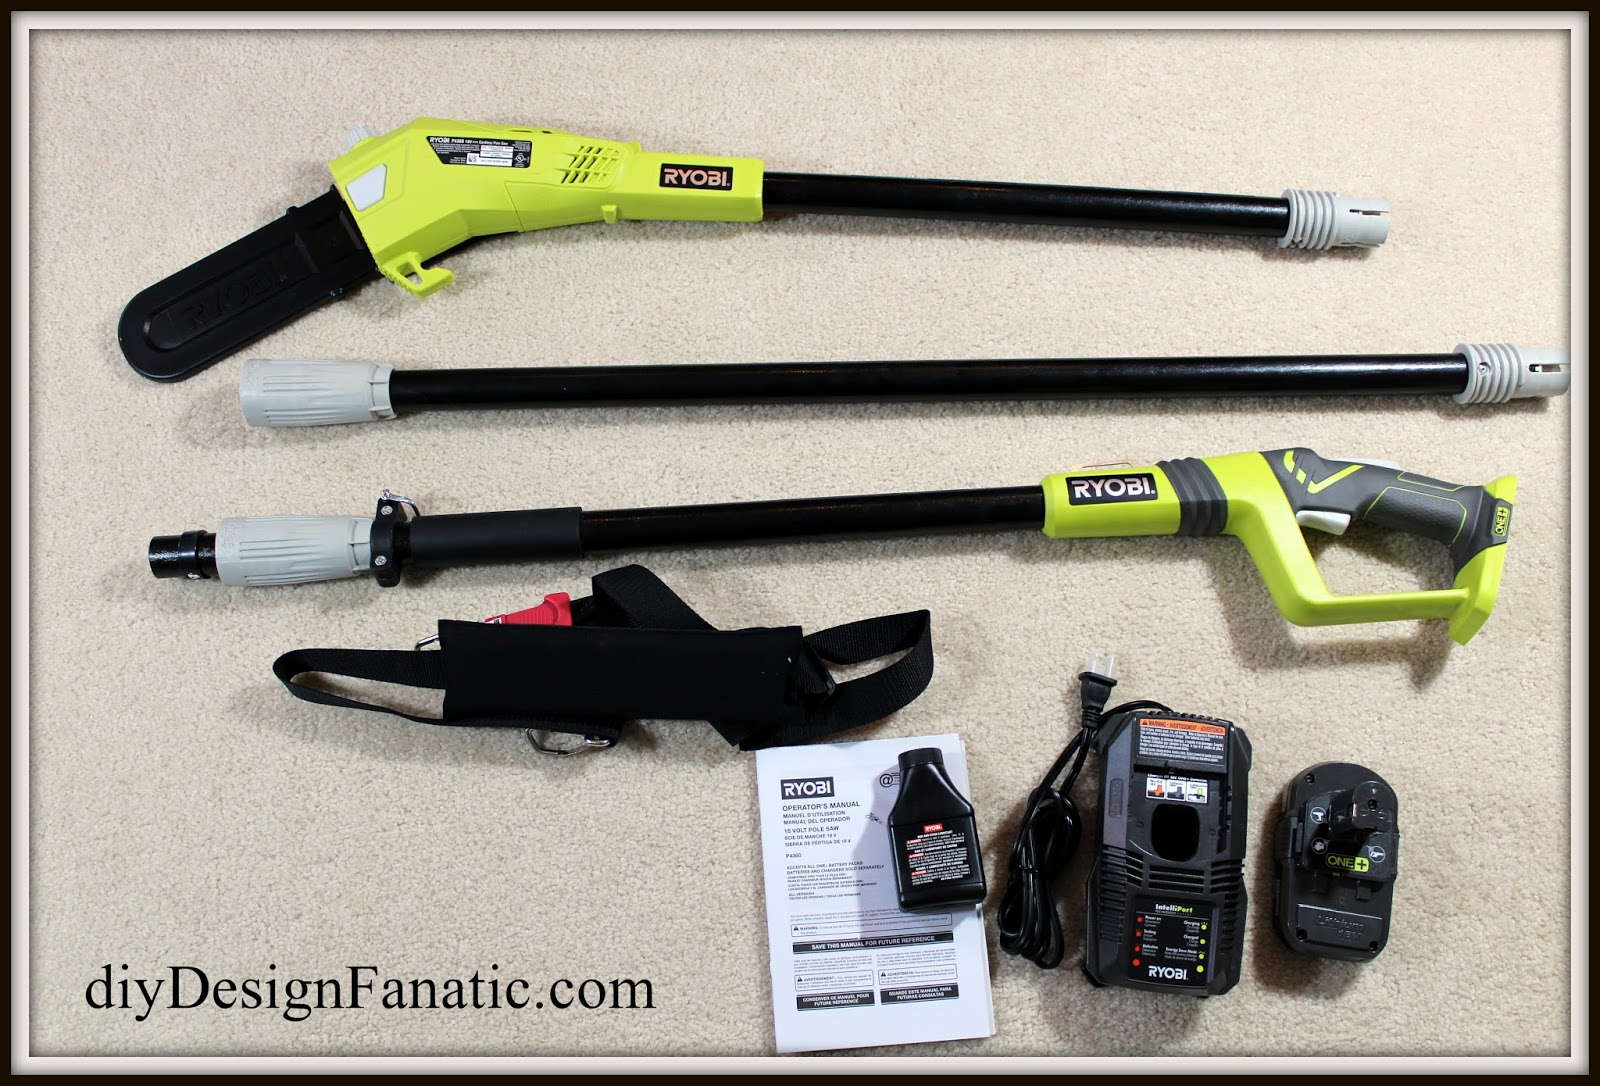 Diy design fanatic ryobi pole saw review as a side notew that i have the batteries i can purchase additional ryobi tools keyboard keysfo Choice Image